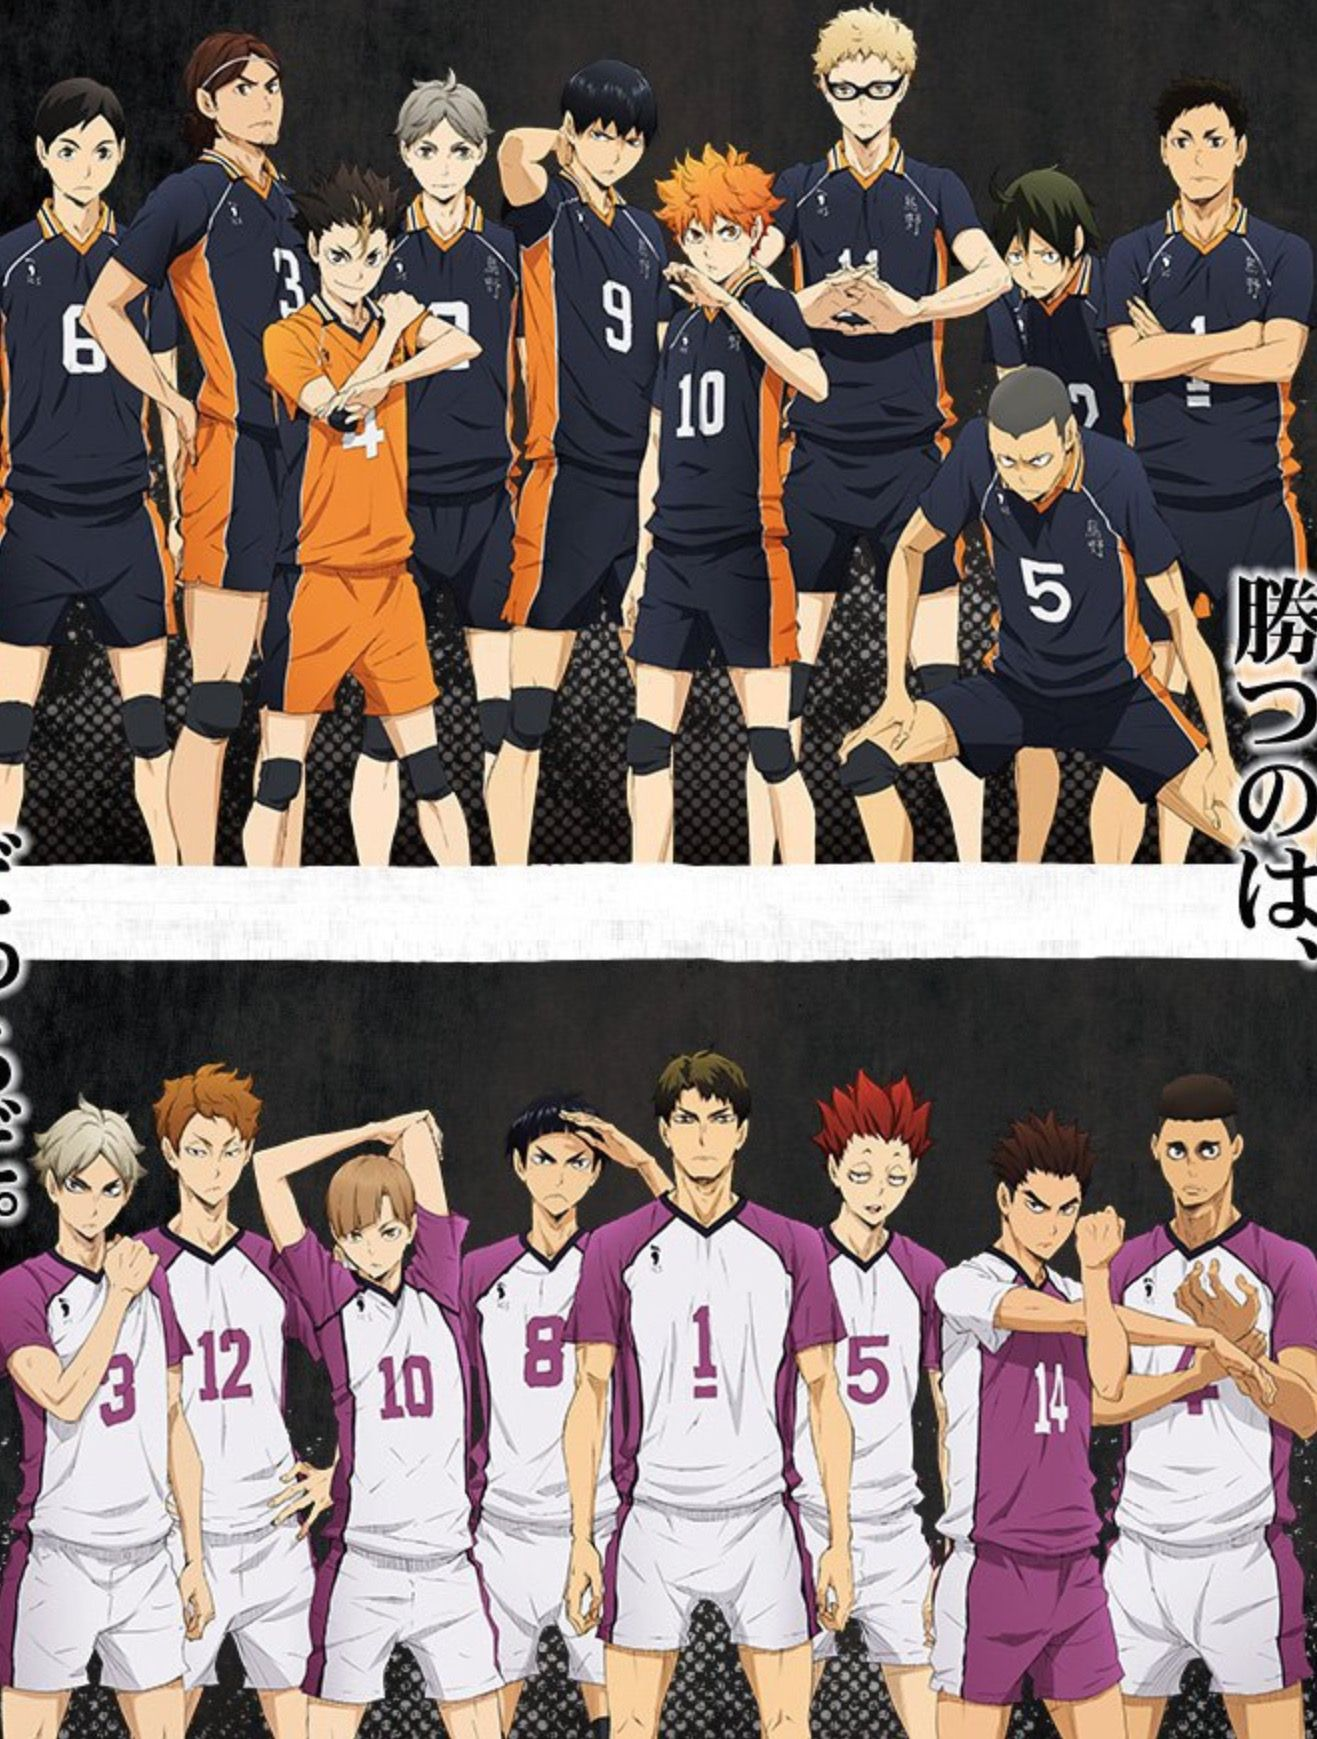 Pin By Ludivinevinckel On Haikyuu In 2020 Haikyuu Karasuno Haikyuu Shiratorizawa